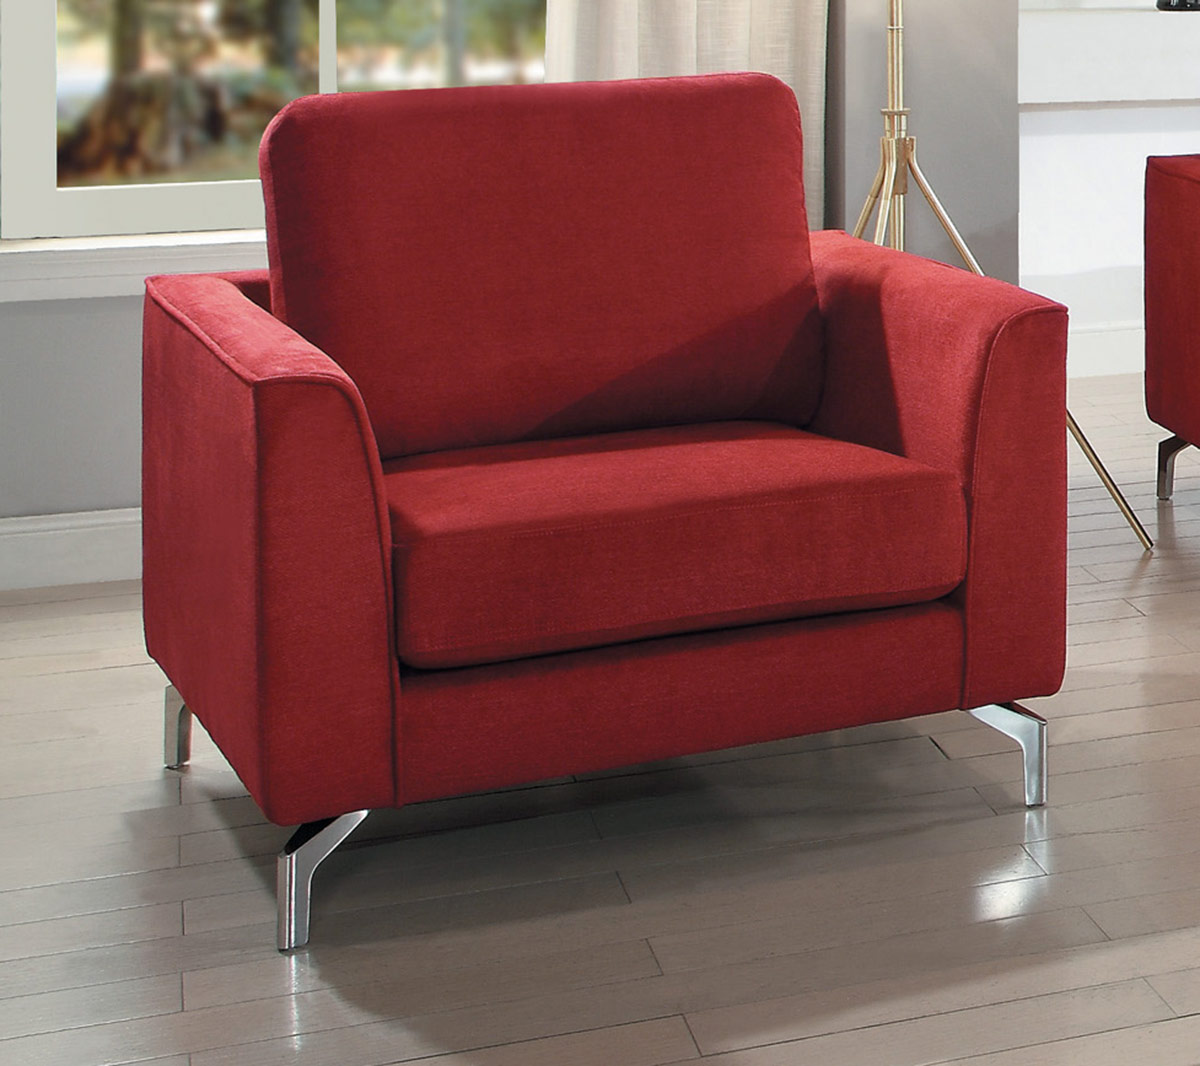 Homelegance Canaan Chair - Red